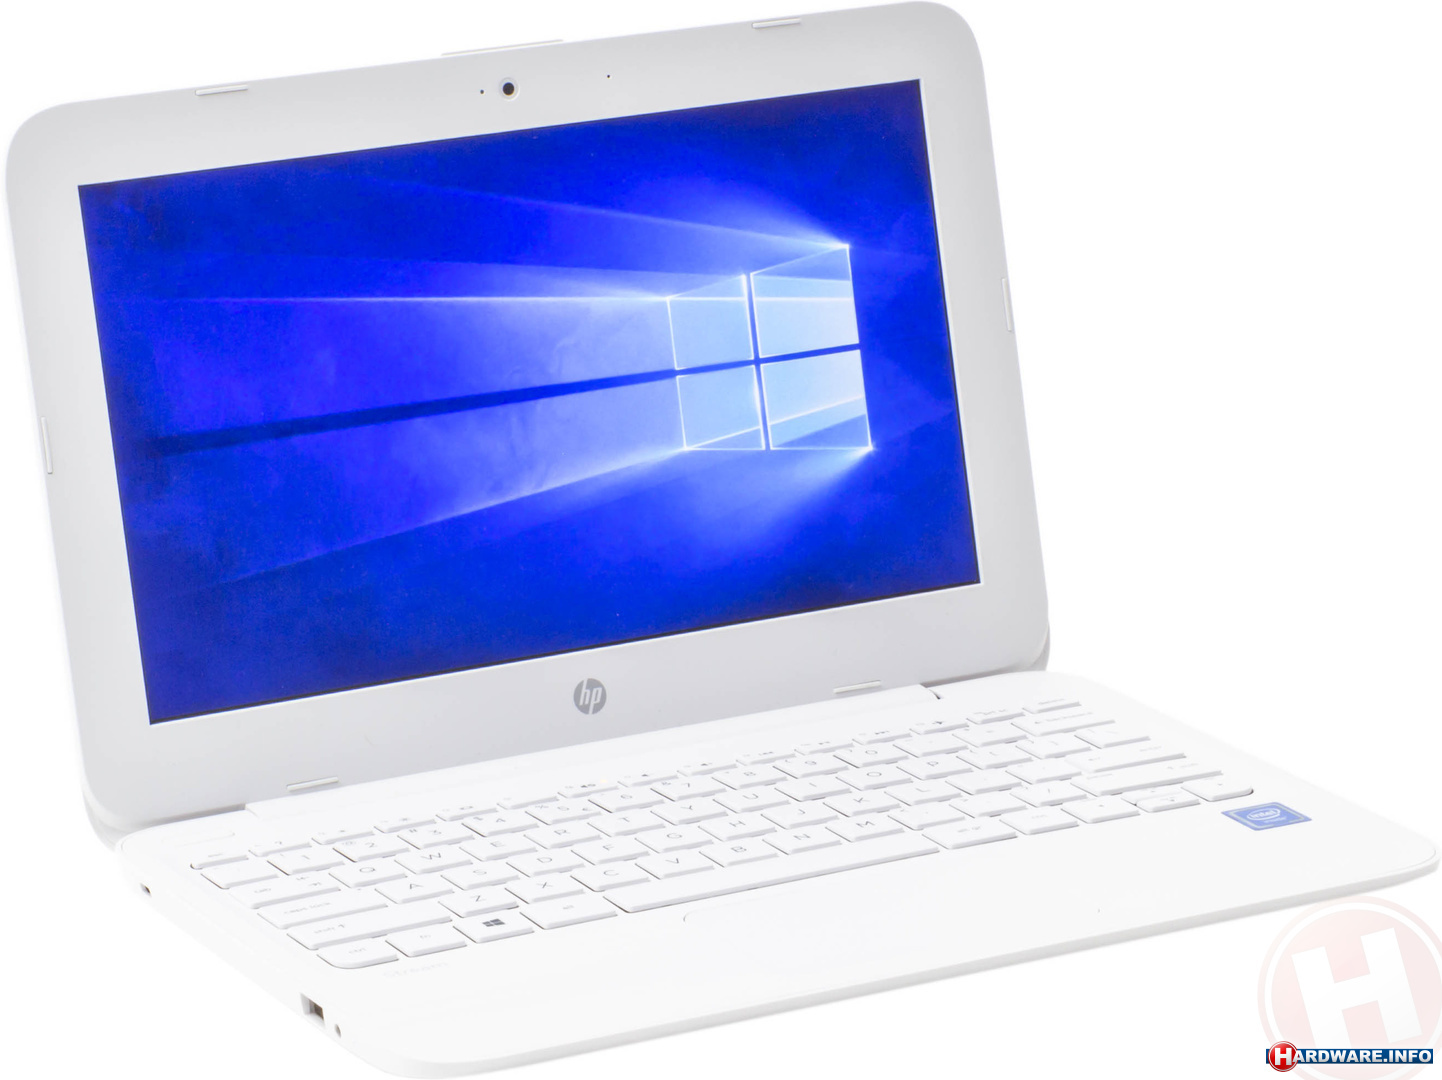 HP Stream 11-y011nd (2EP00EA) laptop/tablet - Hardware Info